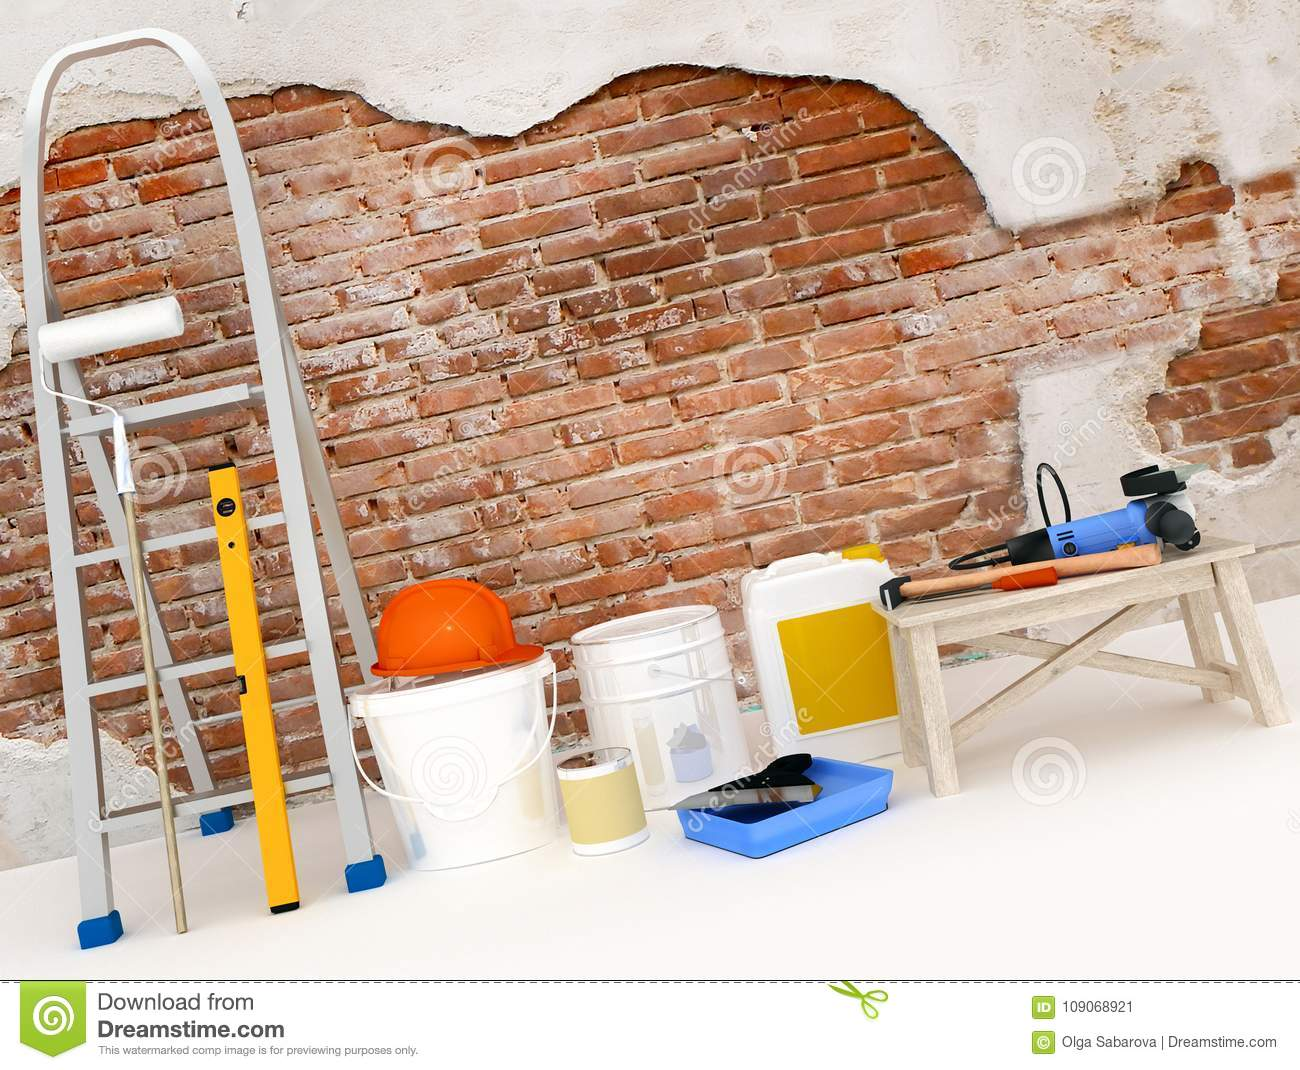 How to start repairing an apartment